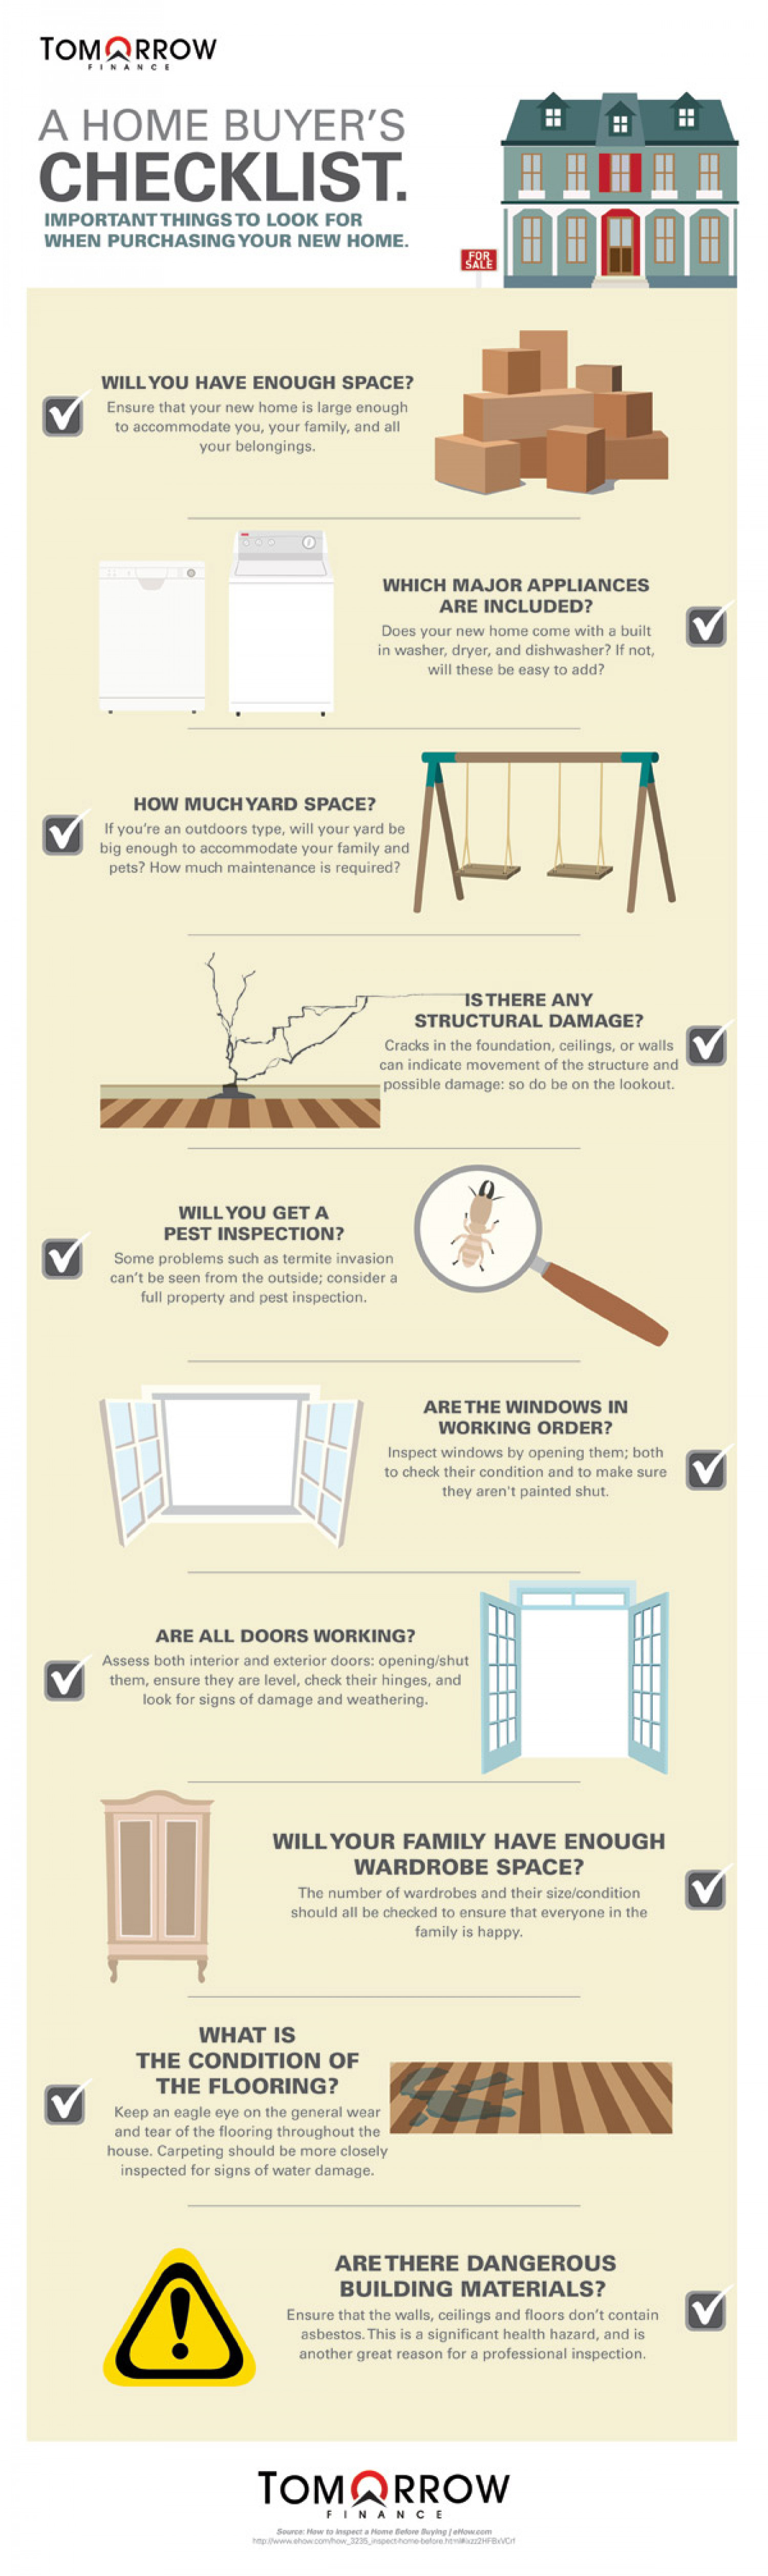 A Home Buyer's Checklist Infographic